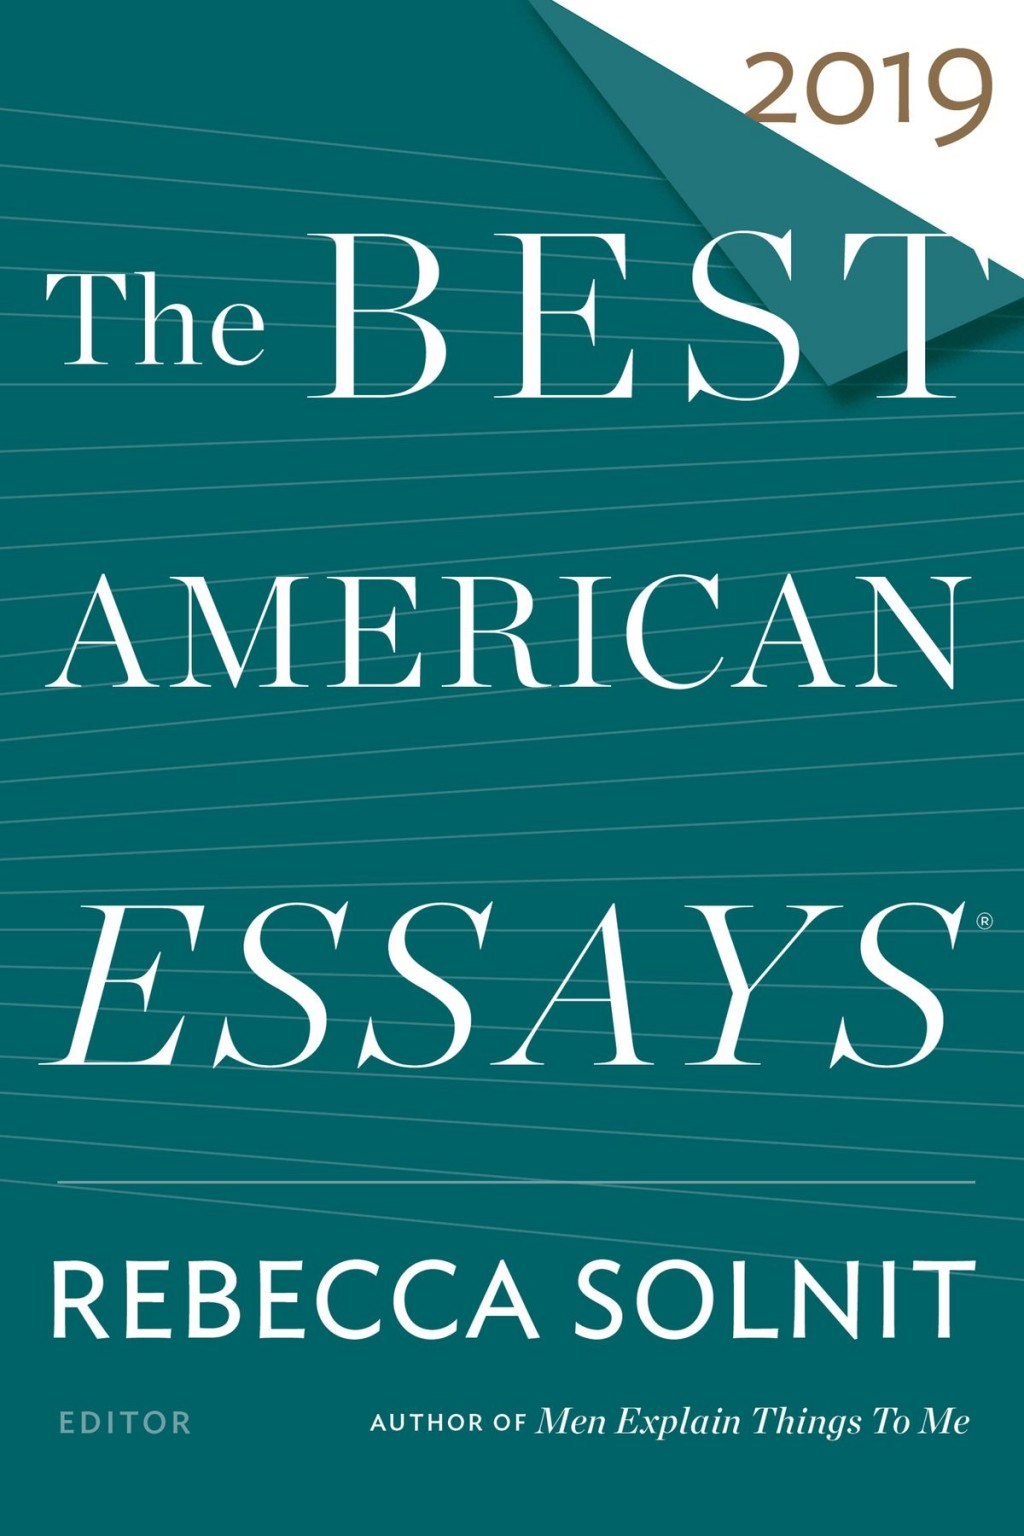 007 The Best American Essays Essay Striking 2017 Table Of Contents Century Pdf Large